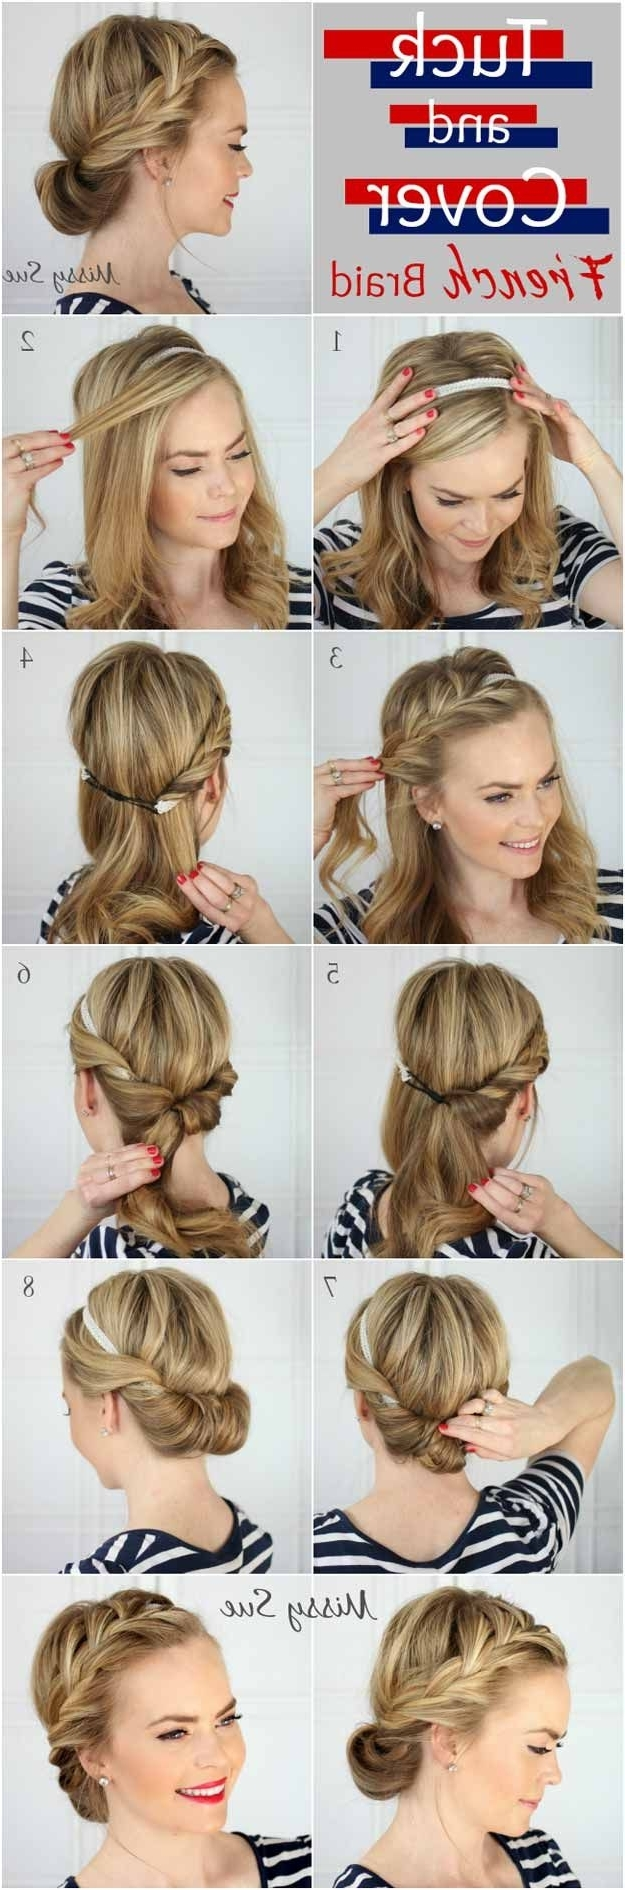 31 Wedding Hairstyles For Long Hair | Professional Hairstyles, Updo Pertaining To Professional Updo Hairstyles For Long Hair (View 7 of 15)